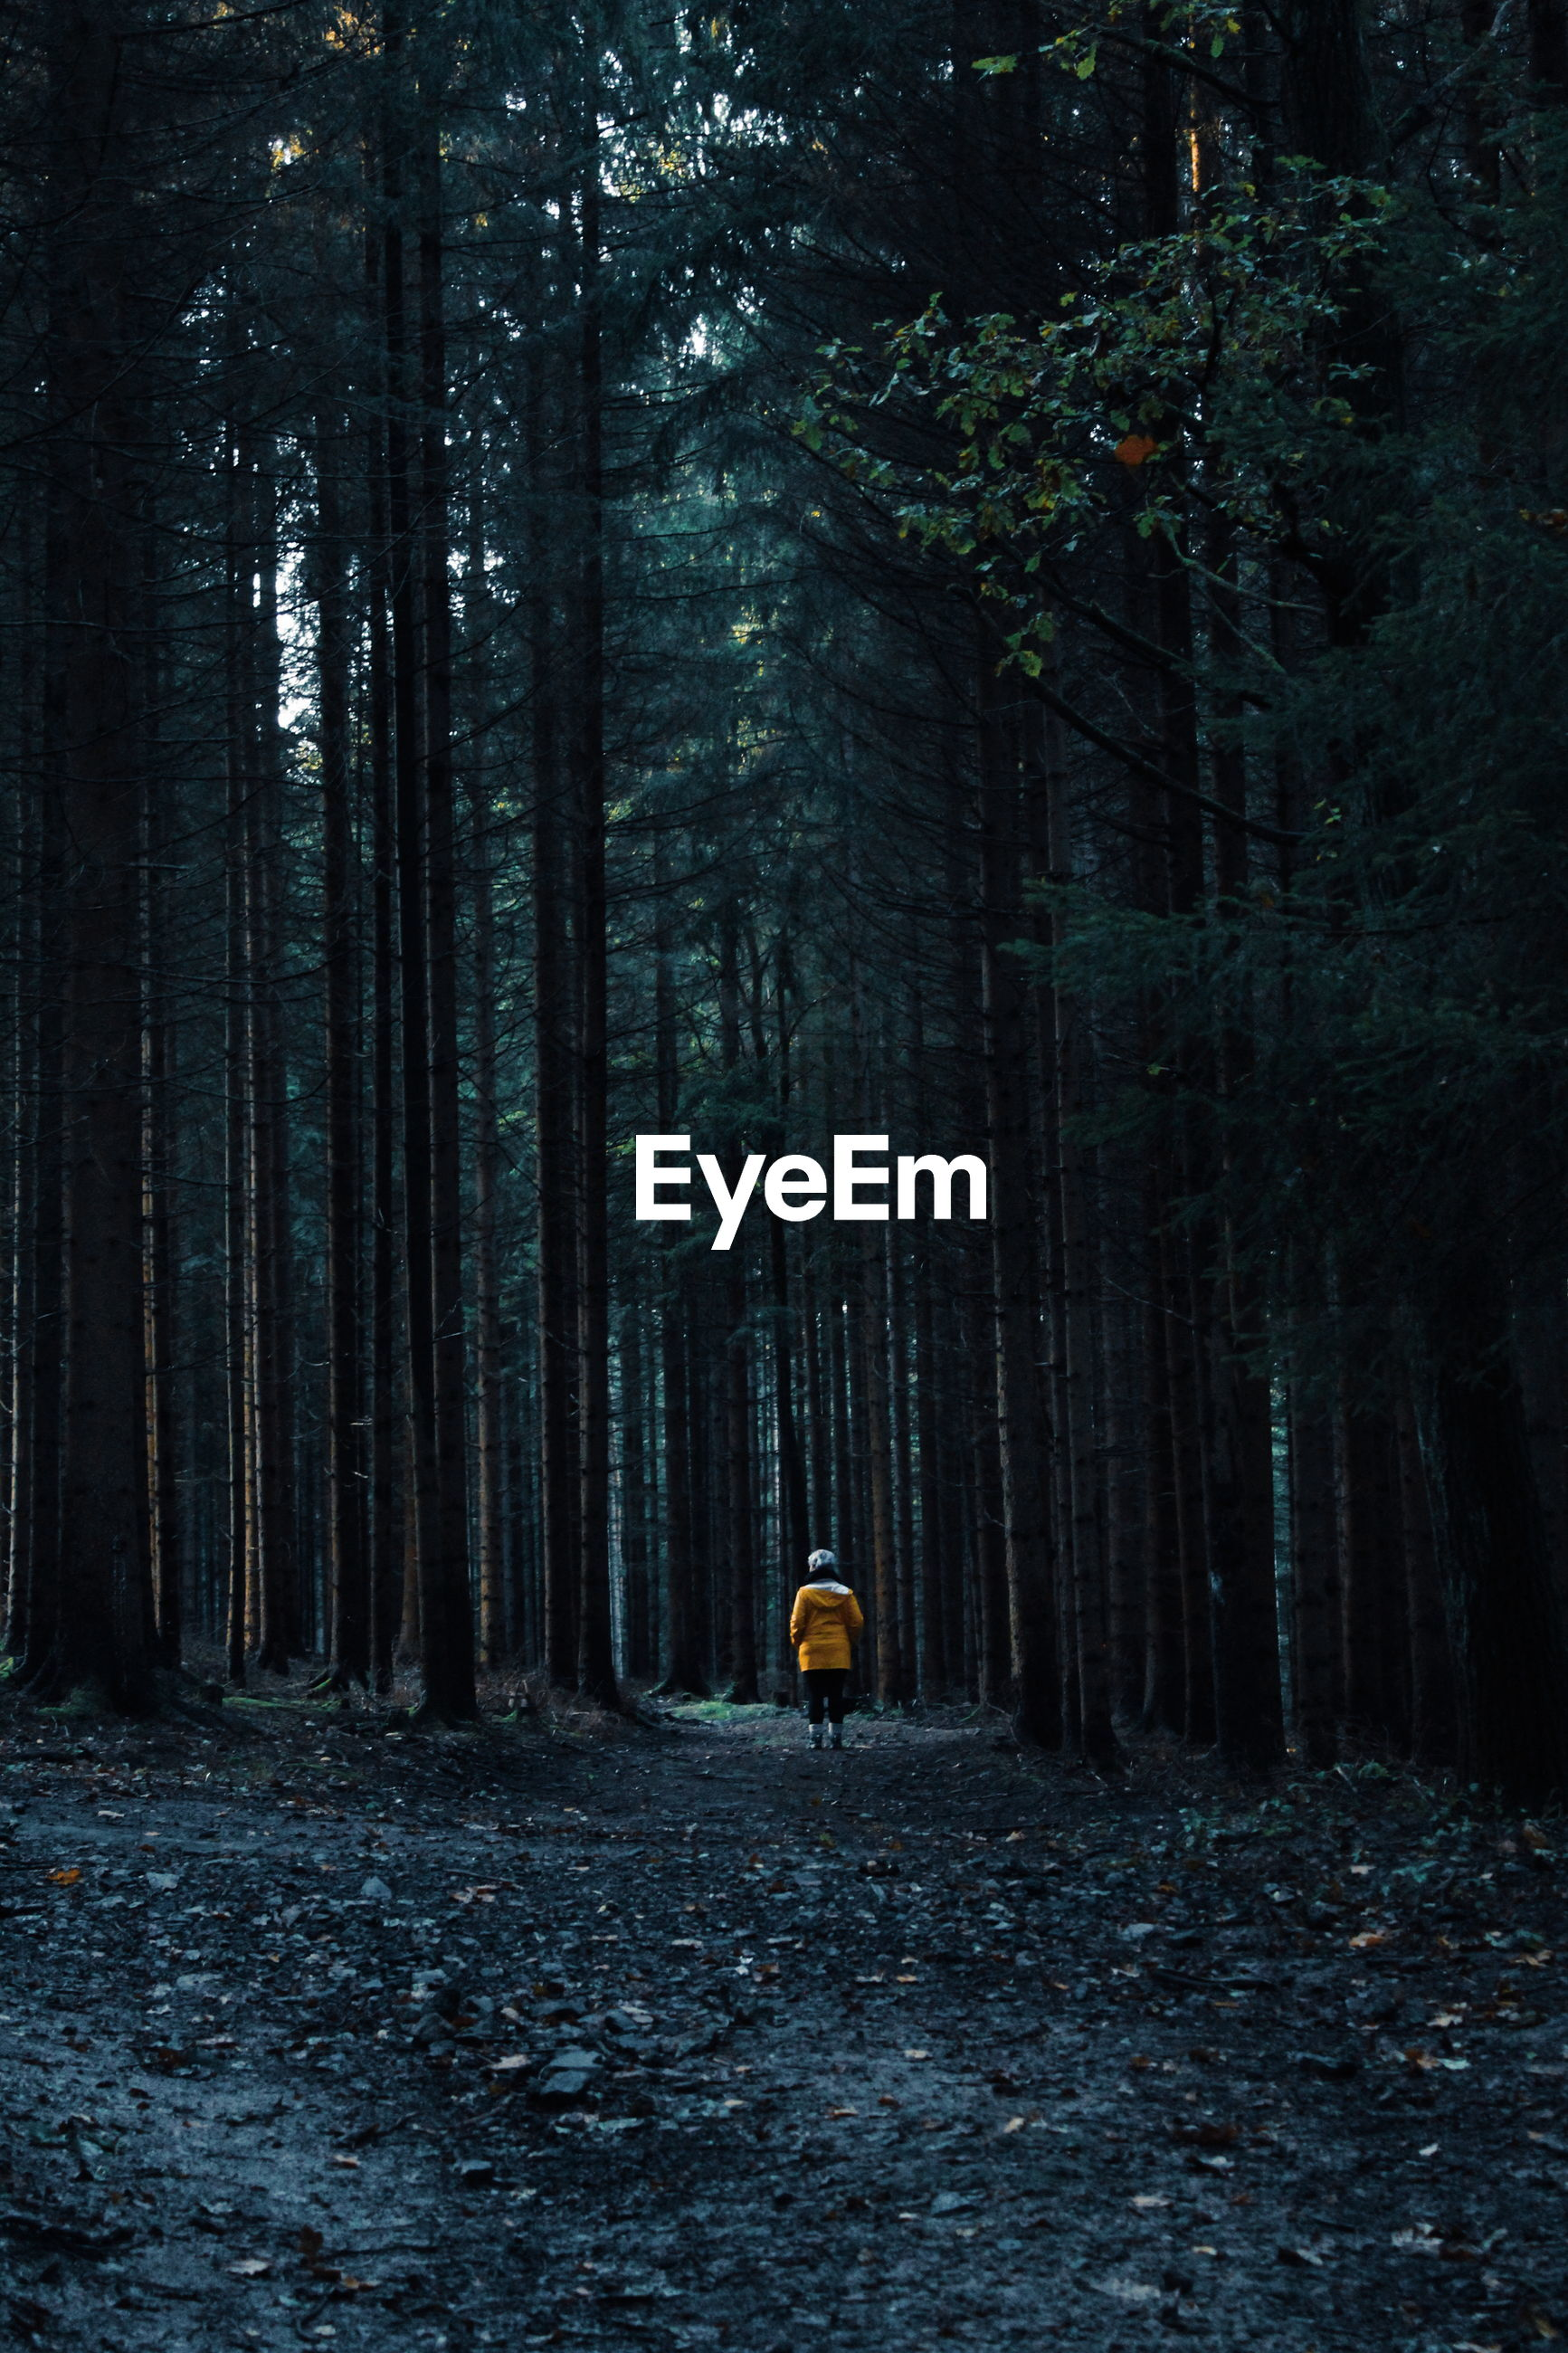 Person amidst trees in forest